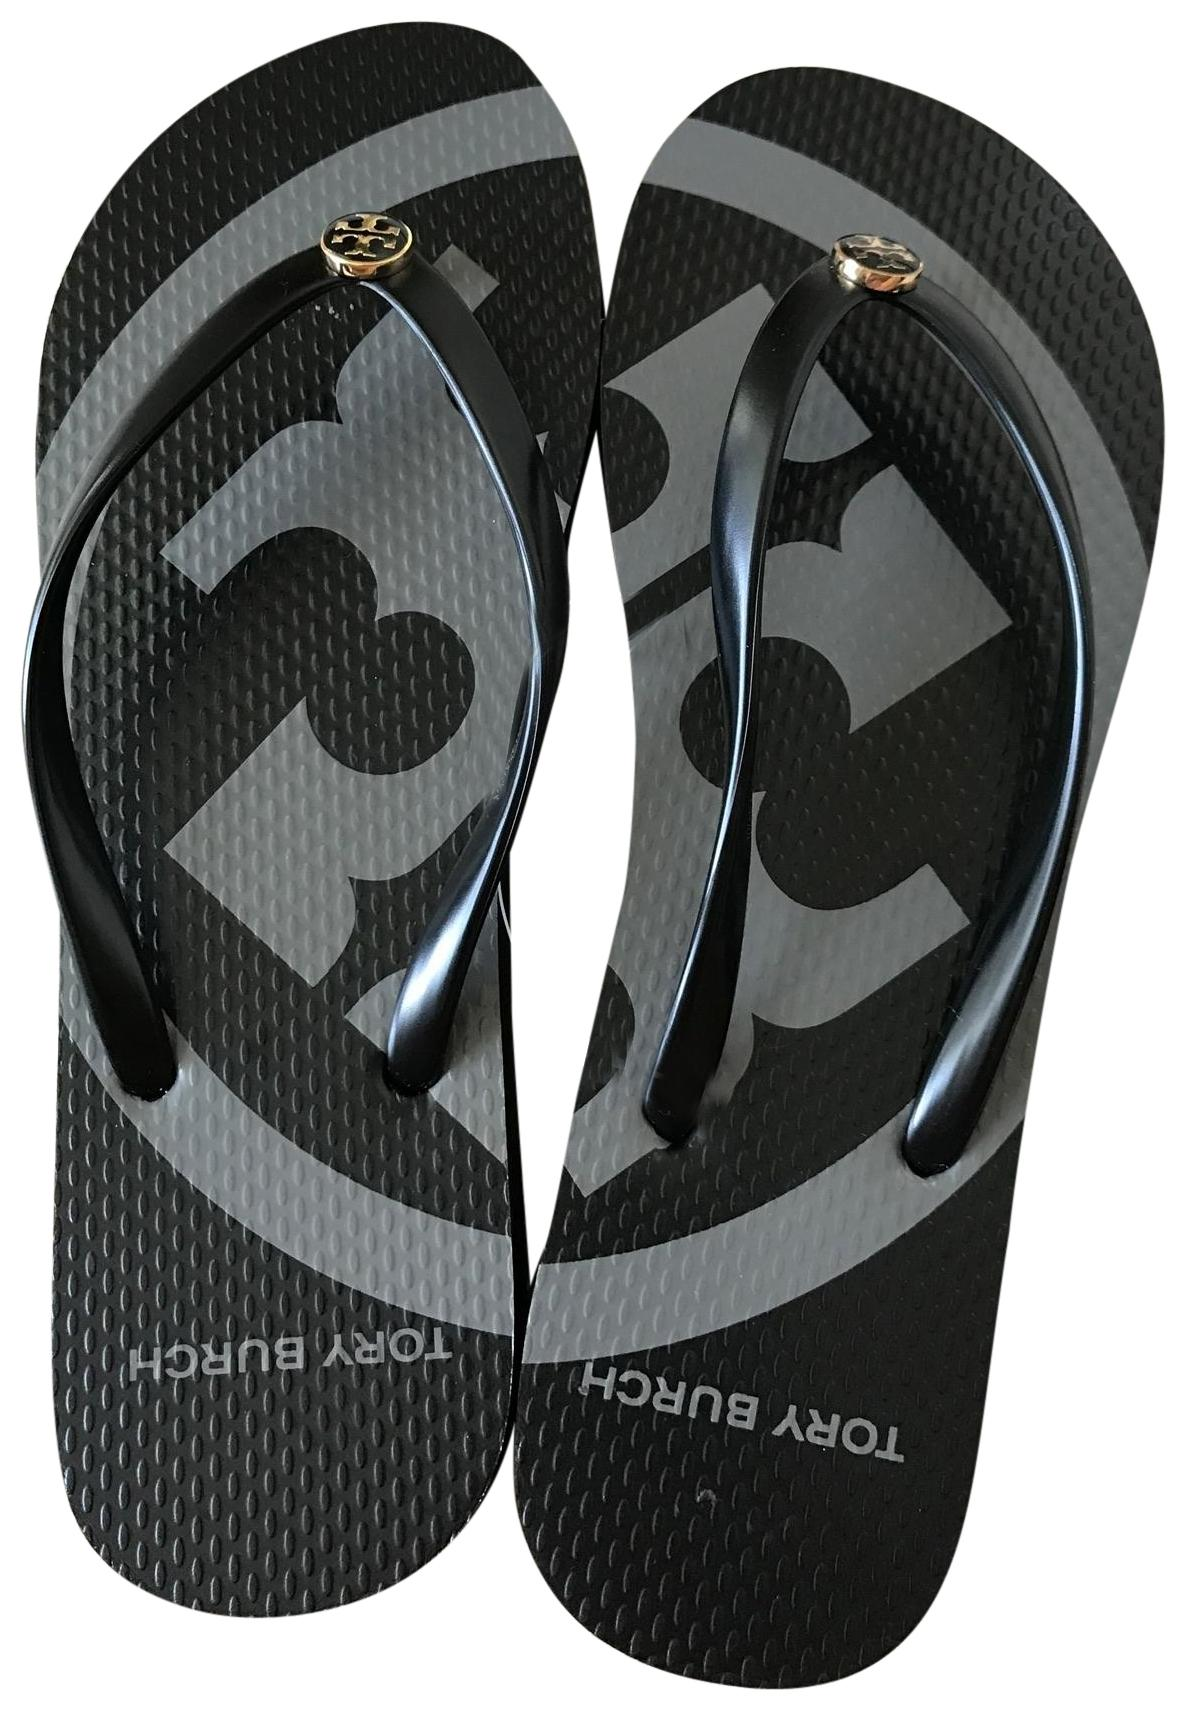 e4195582c Tory Burch Black 11m Emory Flip Flip Flip Flops Sandals Size US 11 Regular  (M